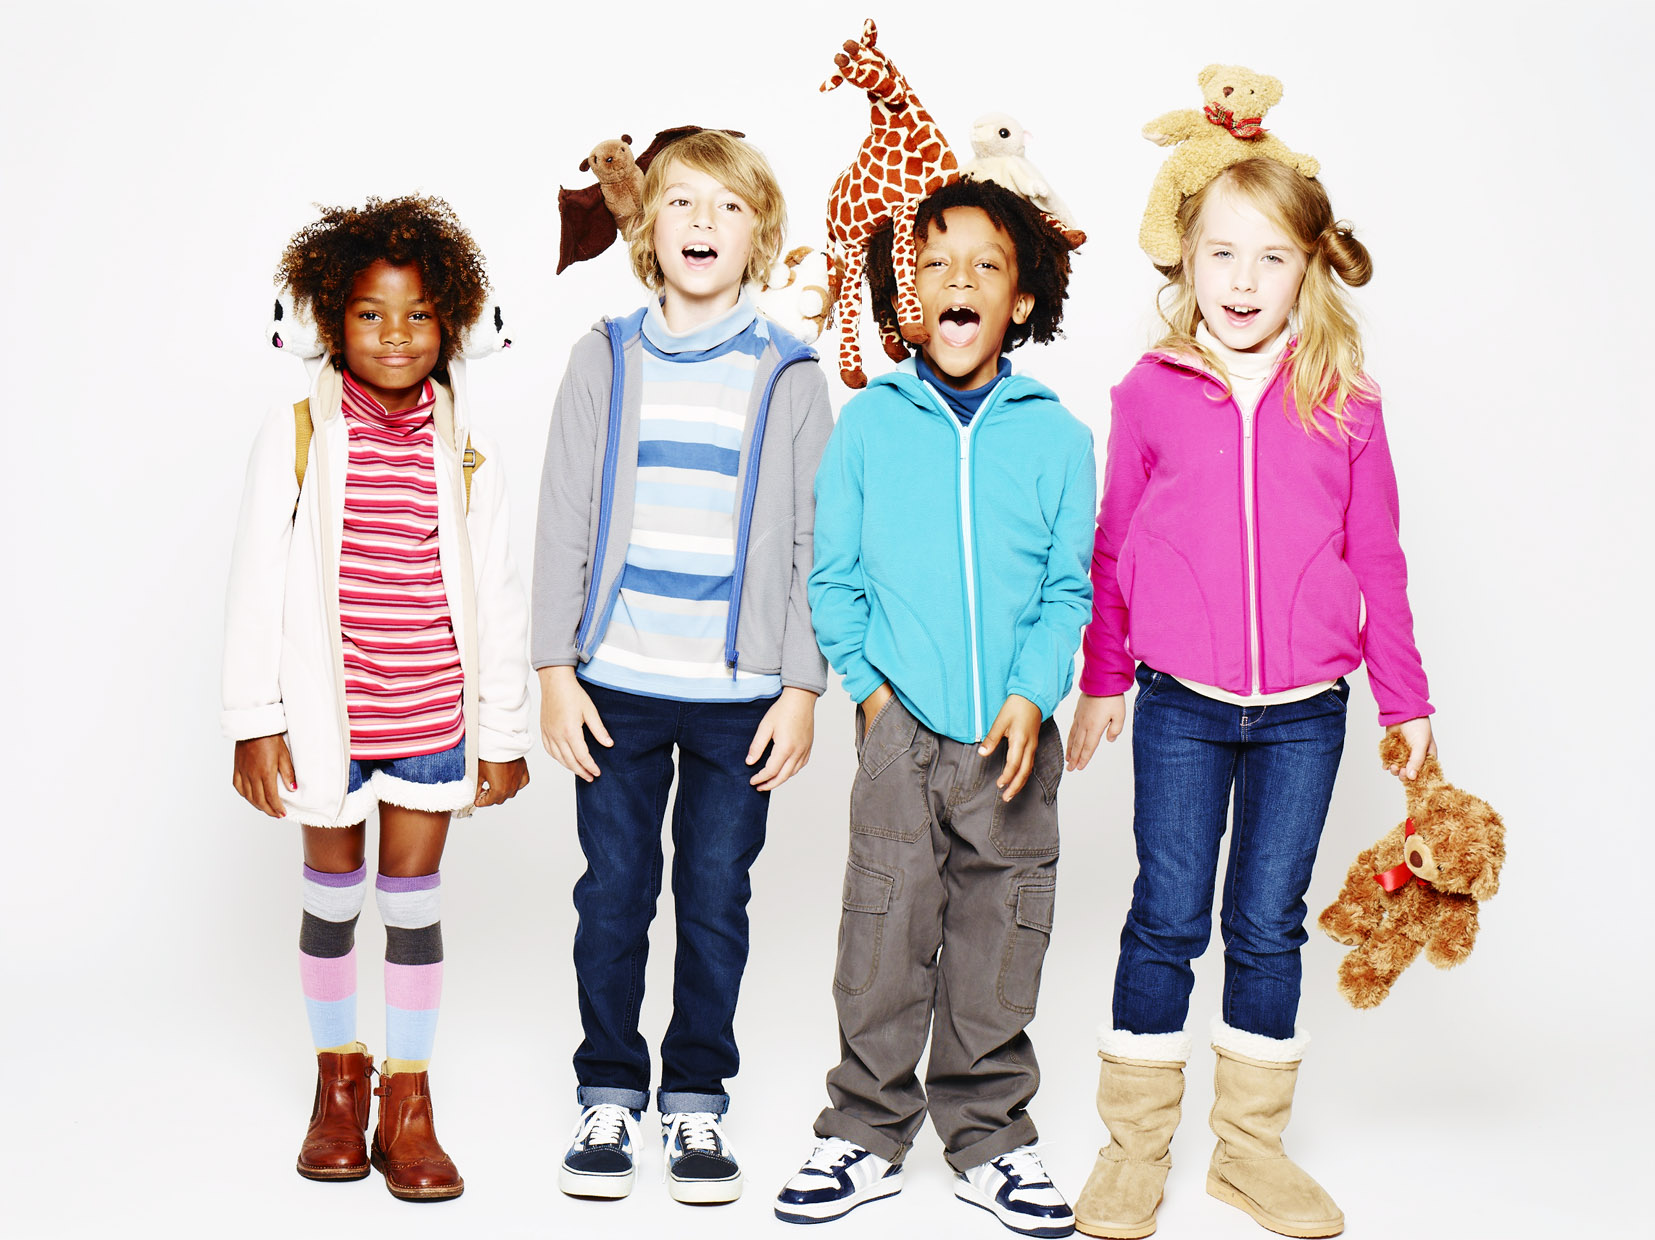 Old Navy has an amazing selection of cute kids clothes in sizes 5 through 16 that will fit your children and your budget. About Our Kids Clothing Collection. Our kids clothing collection includes everything you'll need to have your children looking fashionable from head to toe.